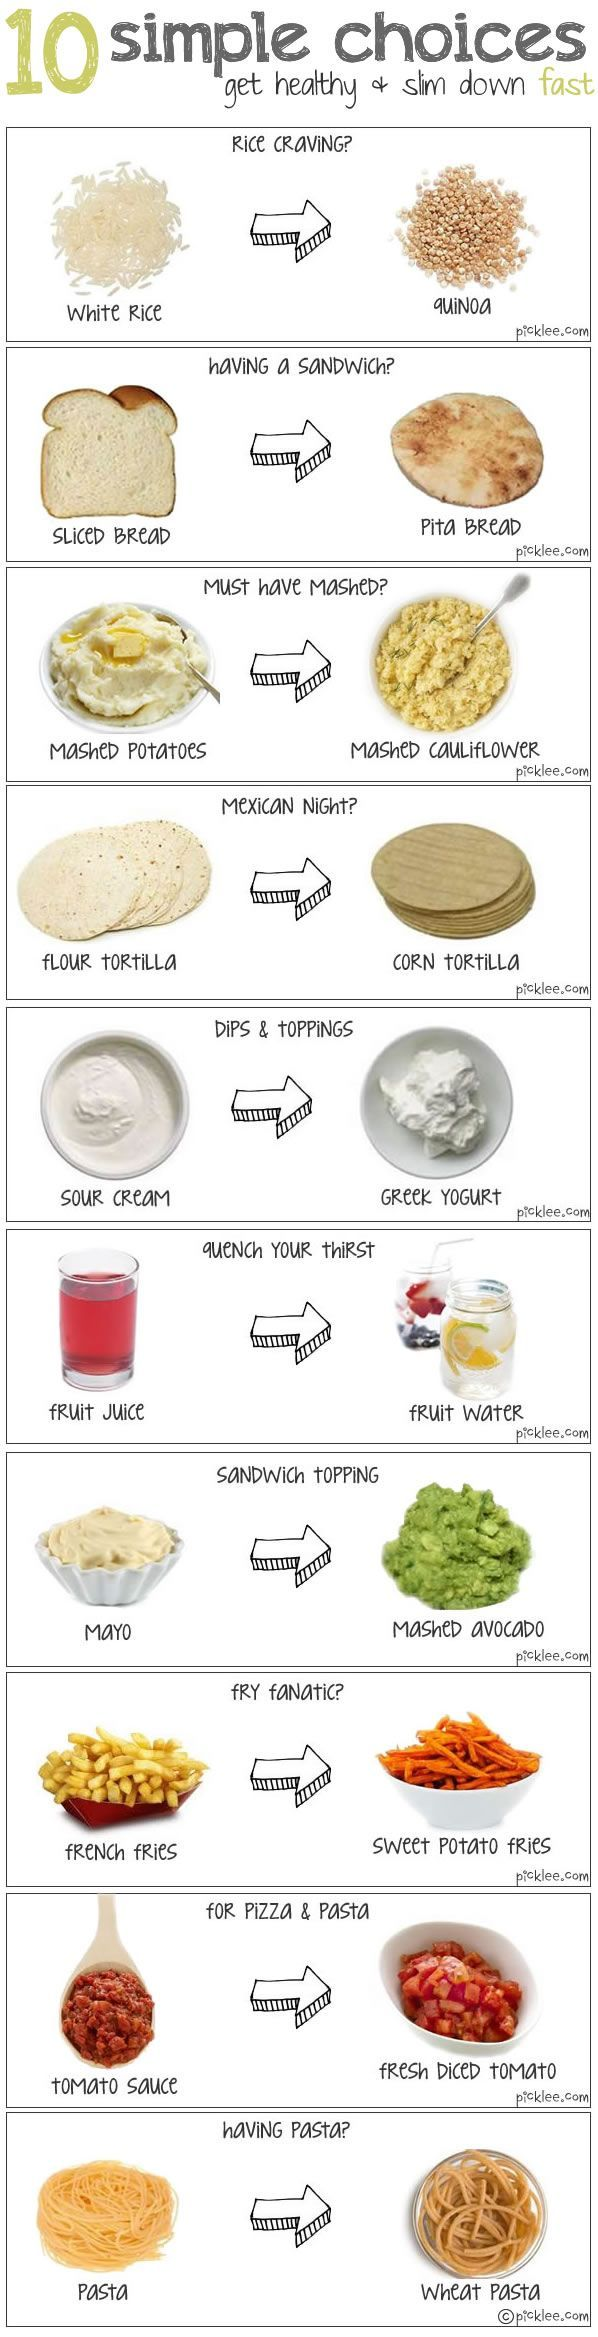 10 Healthy Food Swaps. For the 24 Day Challenge - skip the yogurt/sour cream and instead of corn tortillas, choose carb balance or a true whole wheat tortilla. Instead of sliced bread, try a whole wheat pita or tortilla and make wraps instead! (I, Stacey Shiver, did not create THIS pin. I only repinned it!!!)